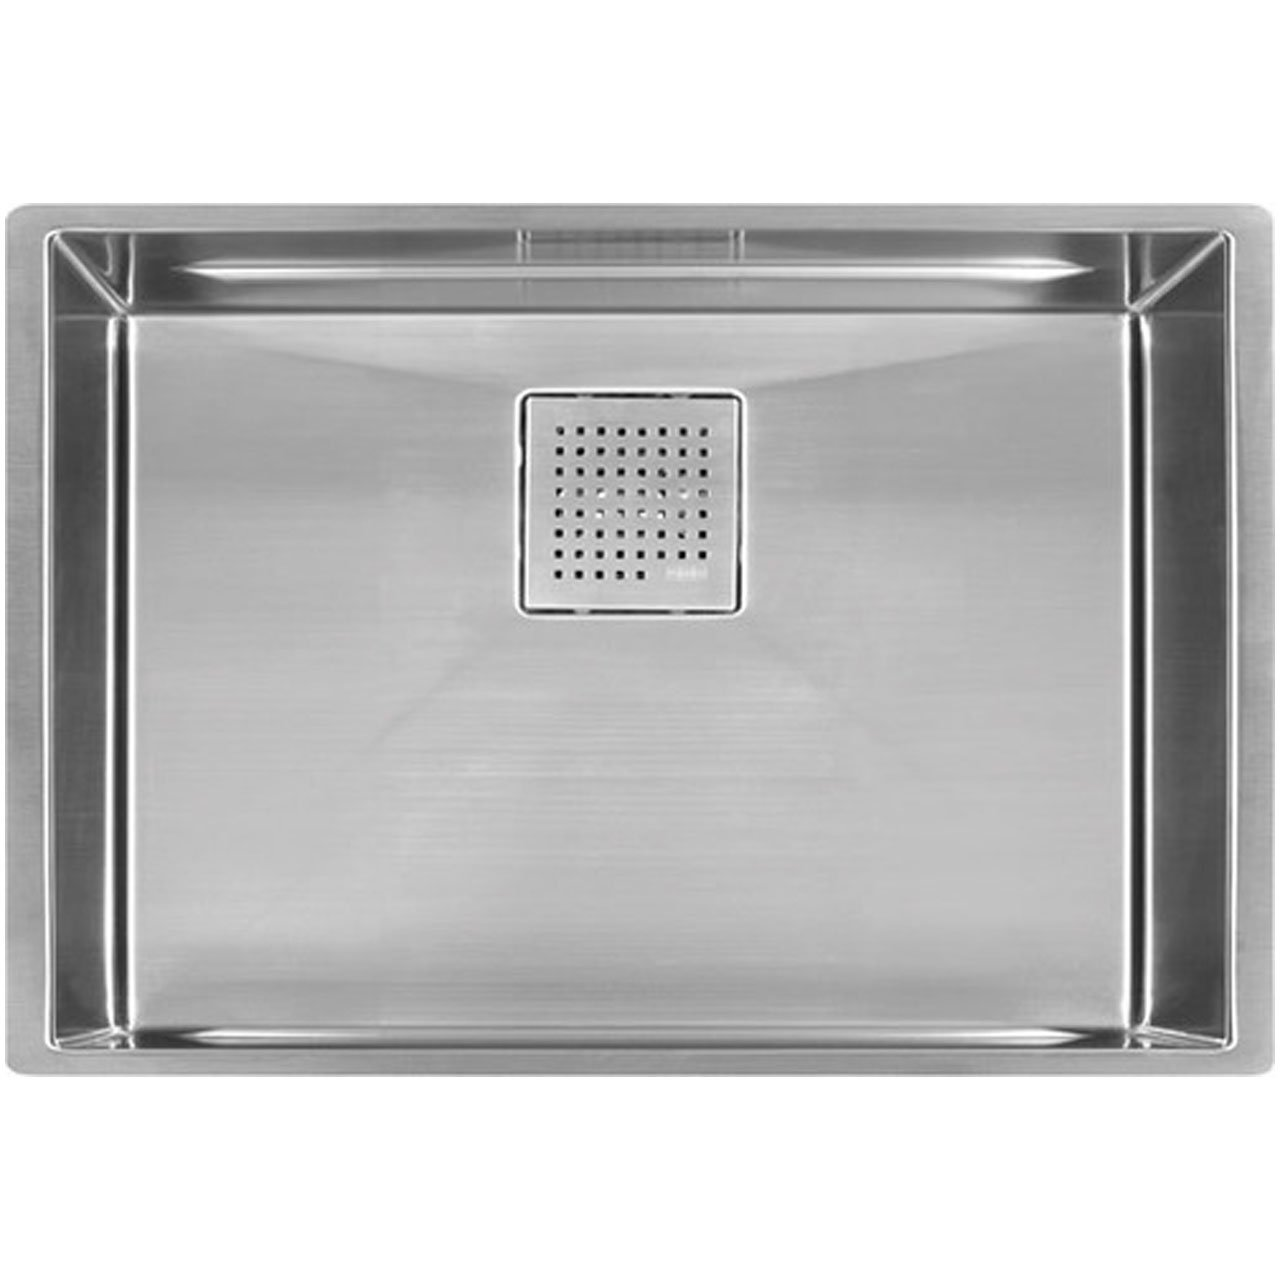 Franke pkx11028 peak 28 3 4 x 17 3 4 x 9 5 8 16 gauge undermount single bowl stainless steel kitchen sink amazon com